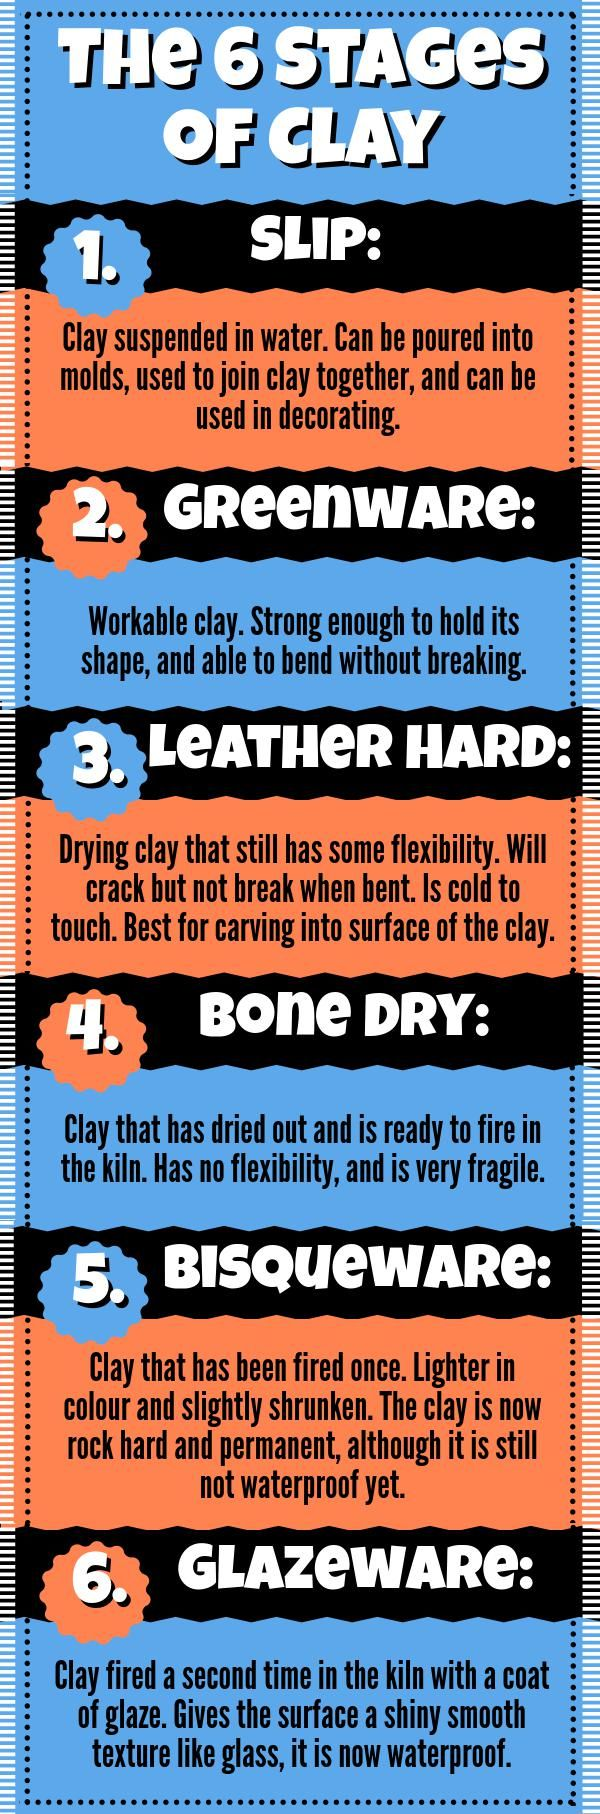 The 6 Stages of Clay   Piktochart Infographic Editor